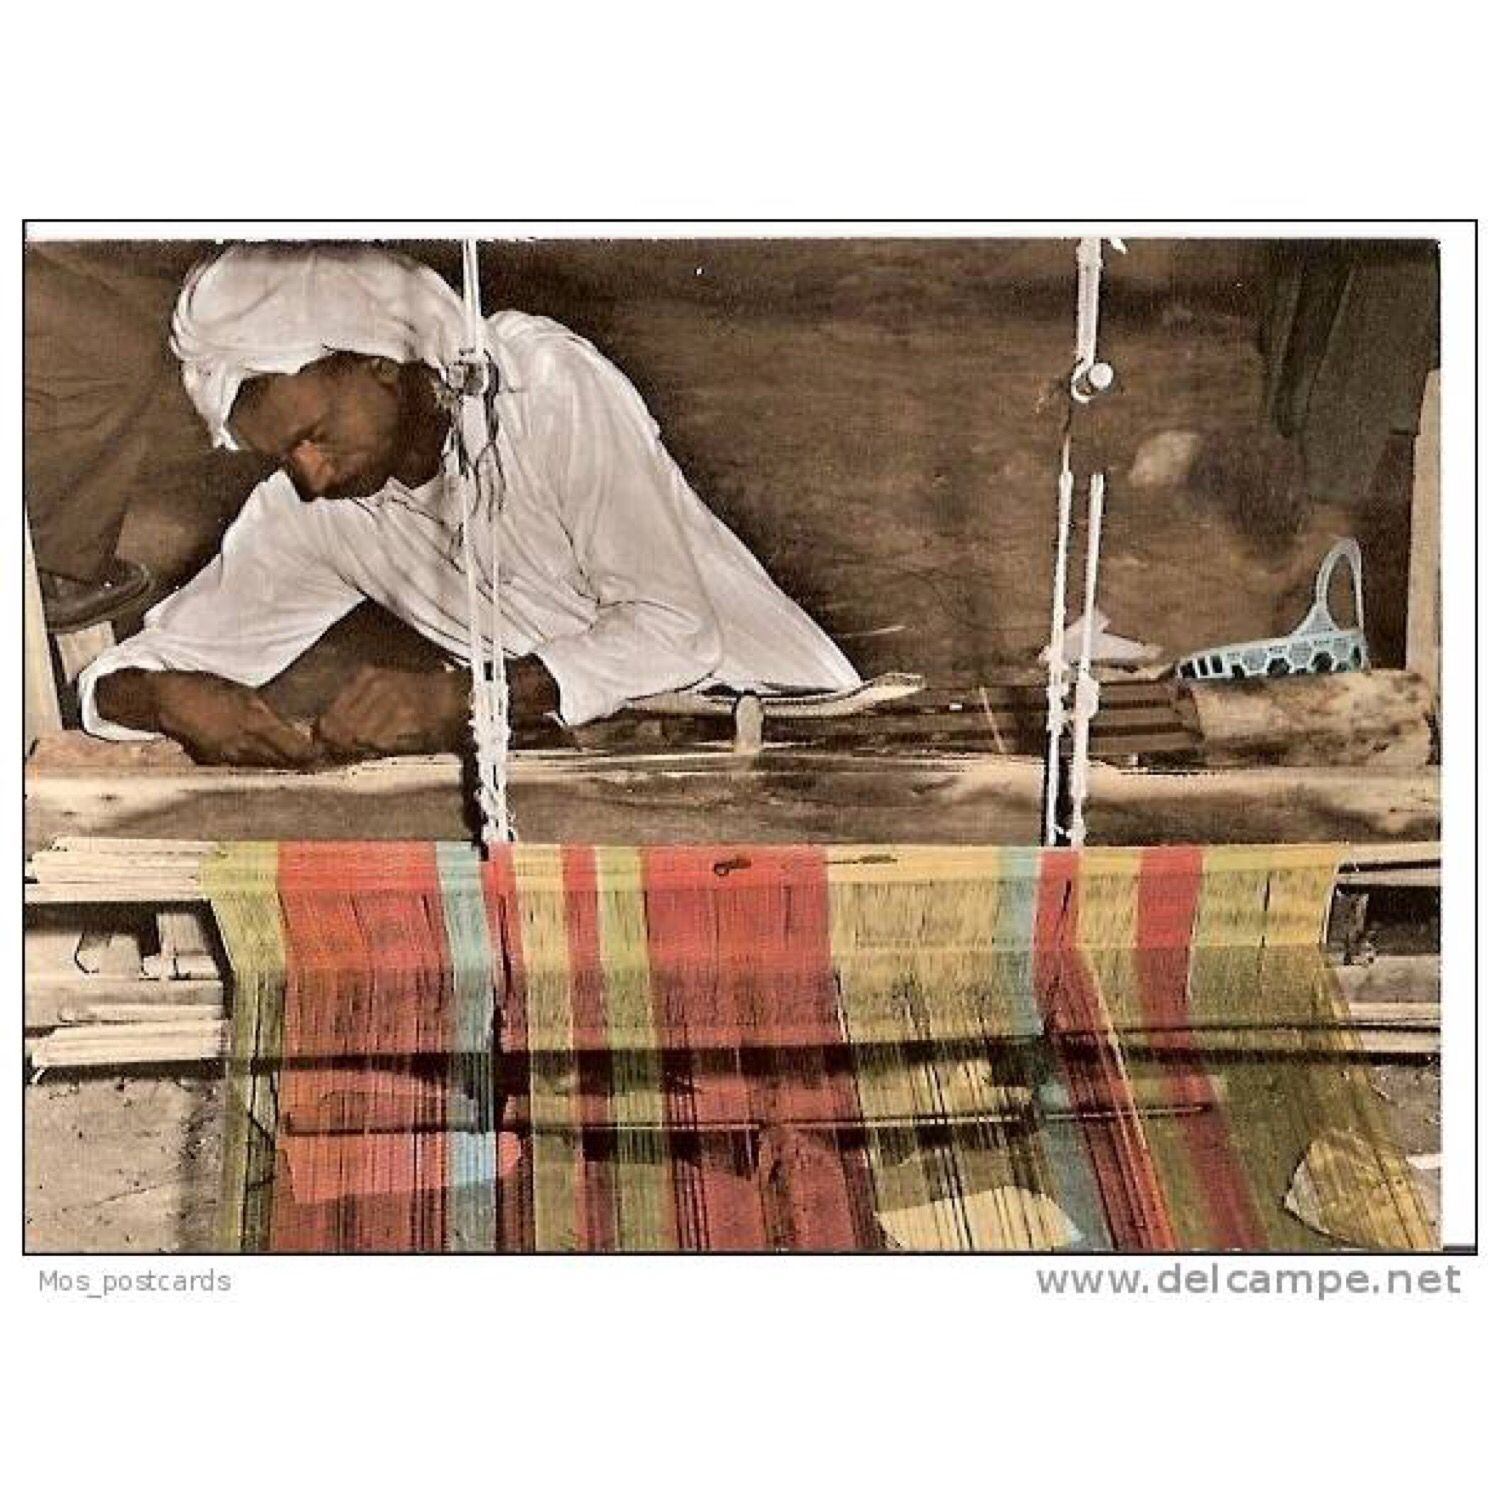 Goodmorning Bahrain Textile Weaving Is Located At The Village Of Bani Jamra Weavers Produce Works Of Arts On Their Manual Heritage Crafts Bahrain Textiles